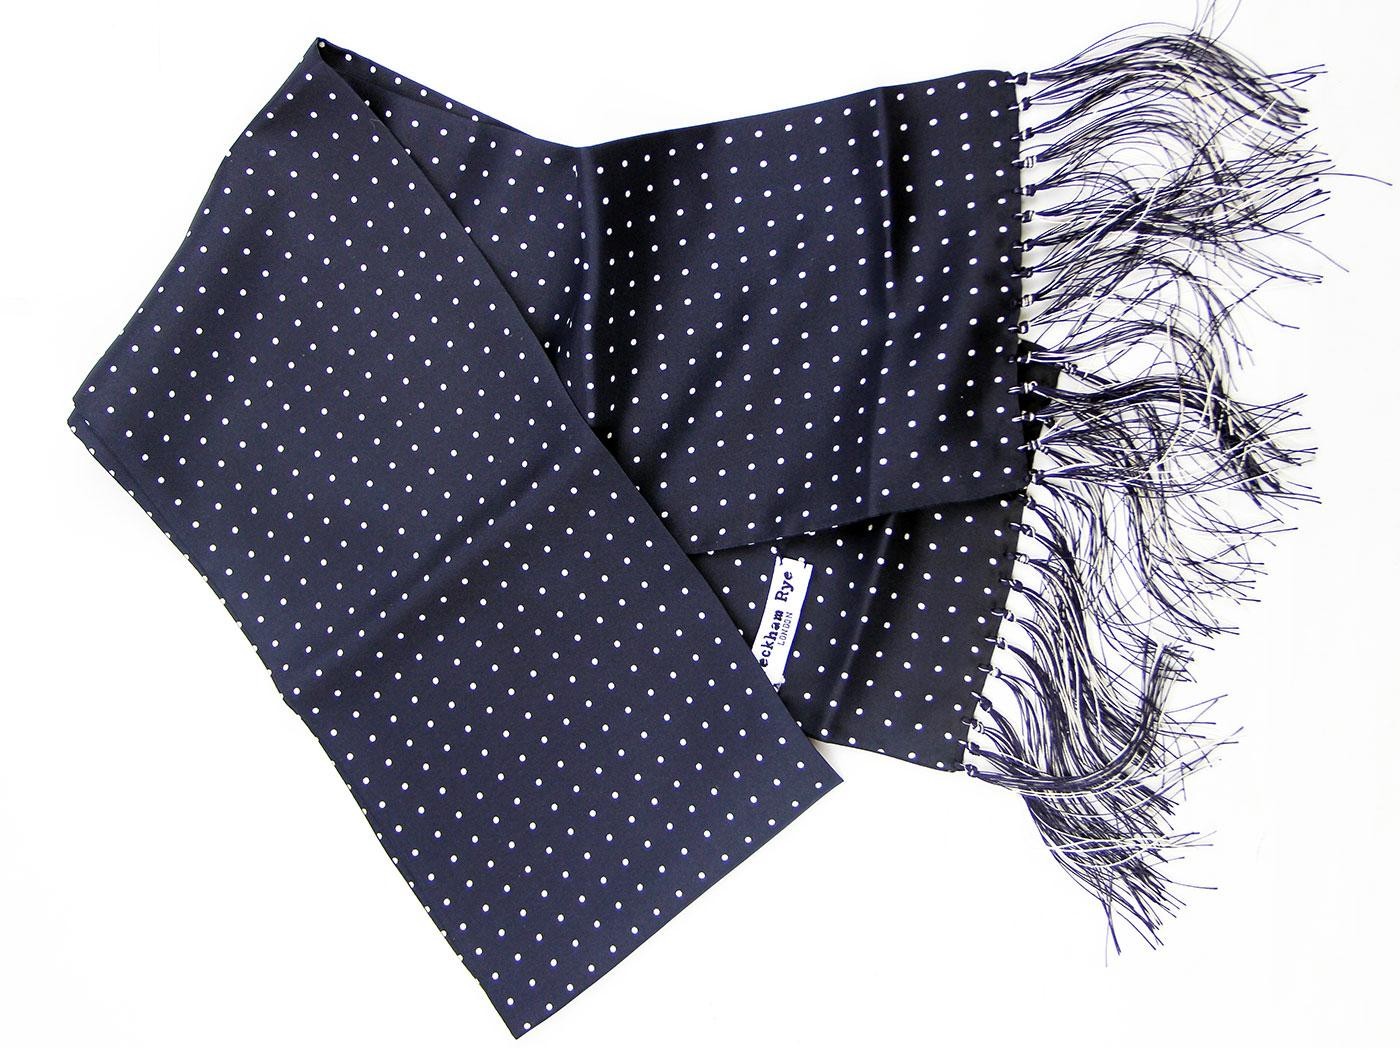 London Spot PECKHAM RYE Retro Mod Silk Scarf (N/W)